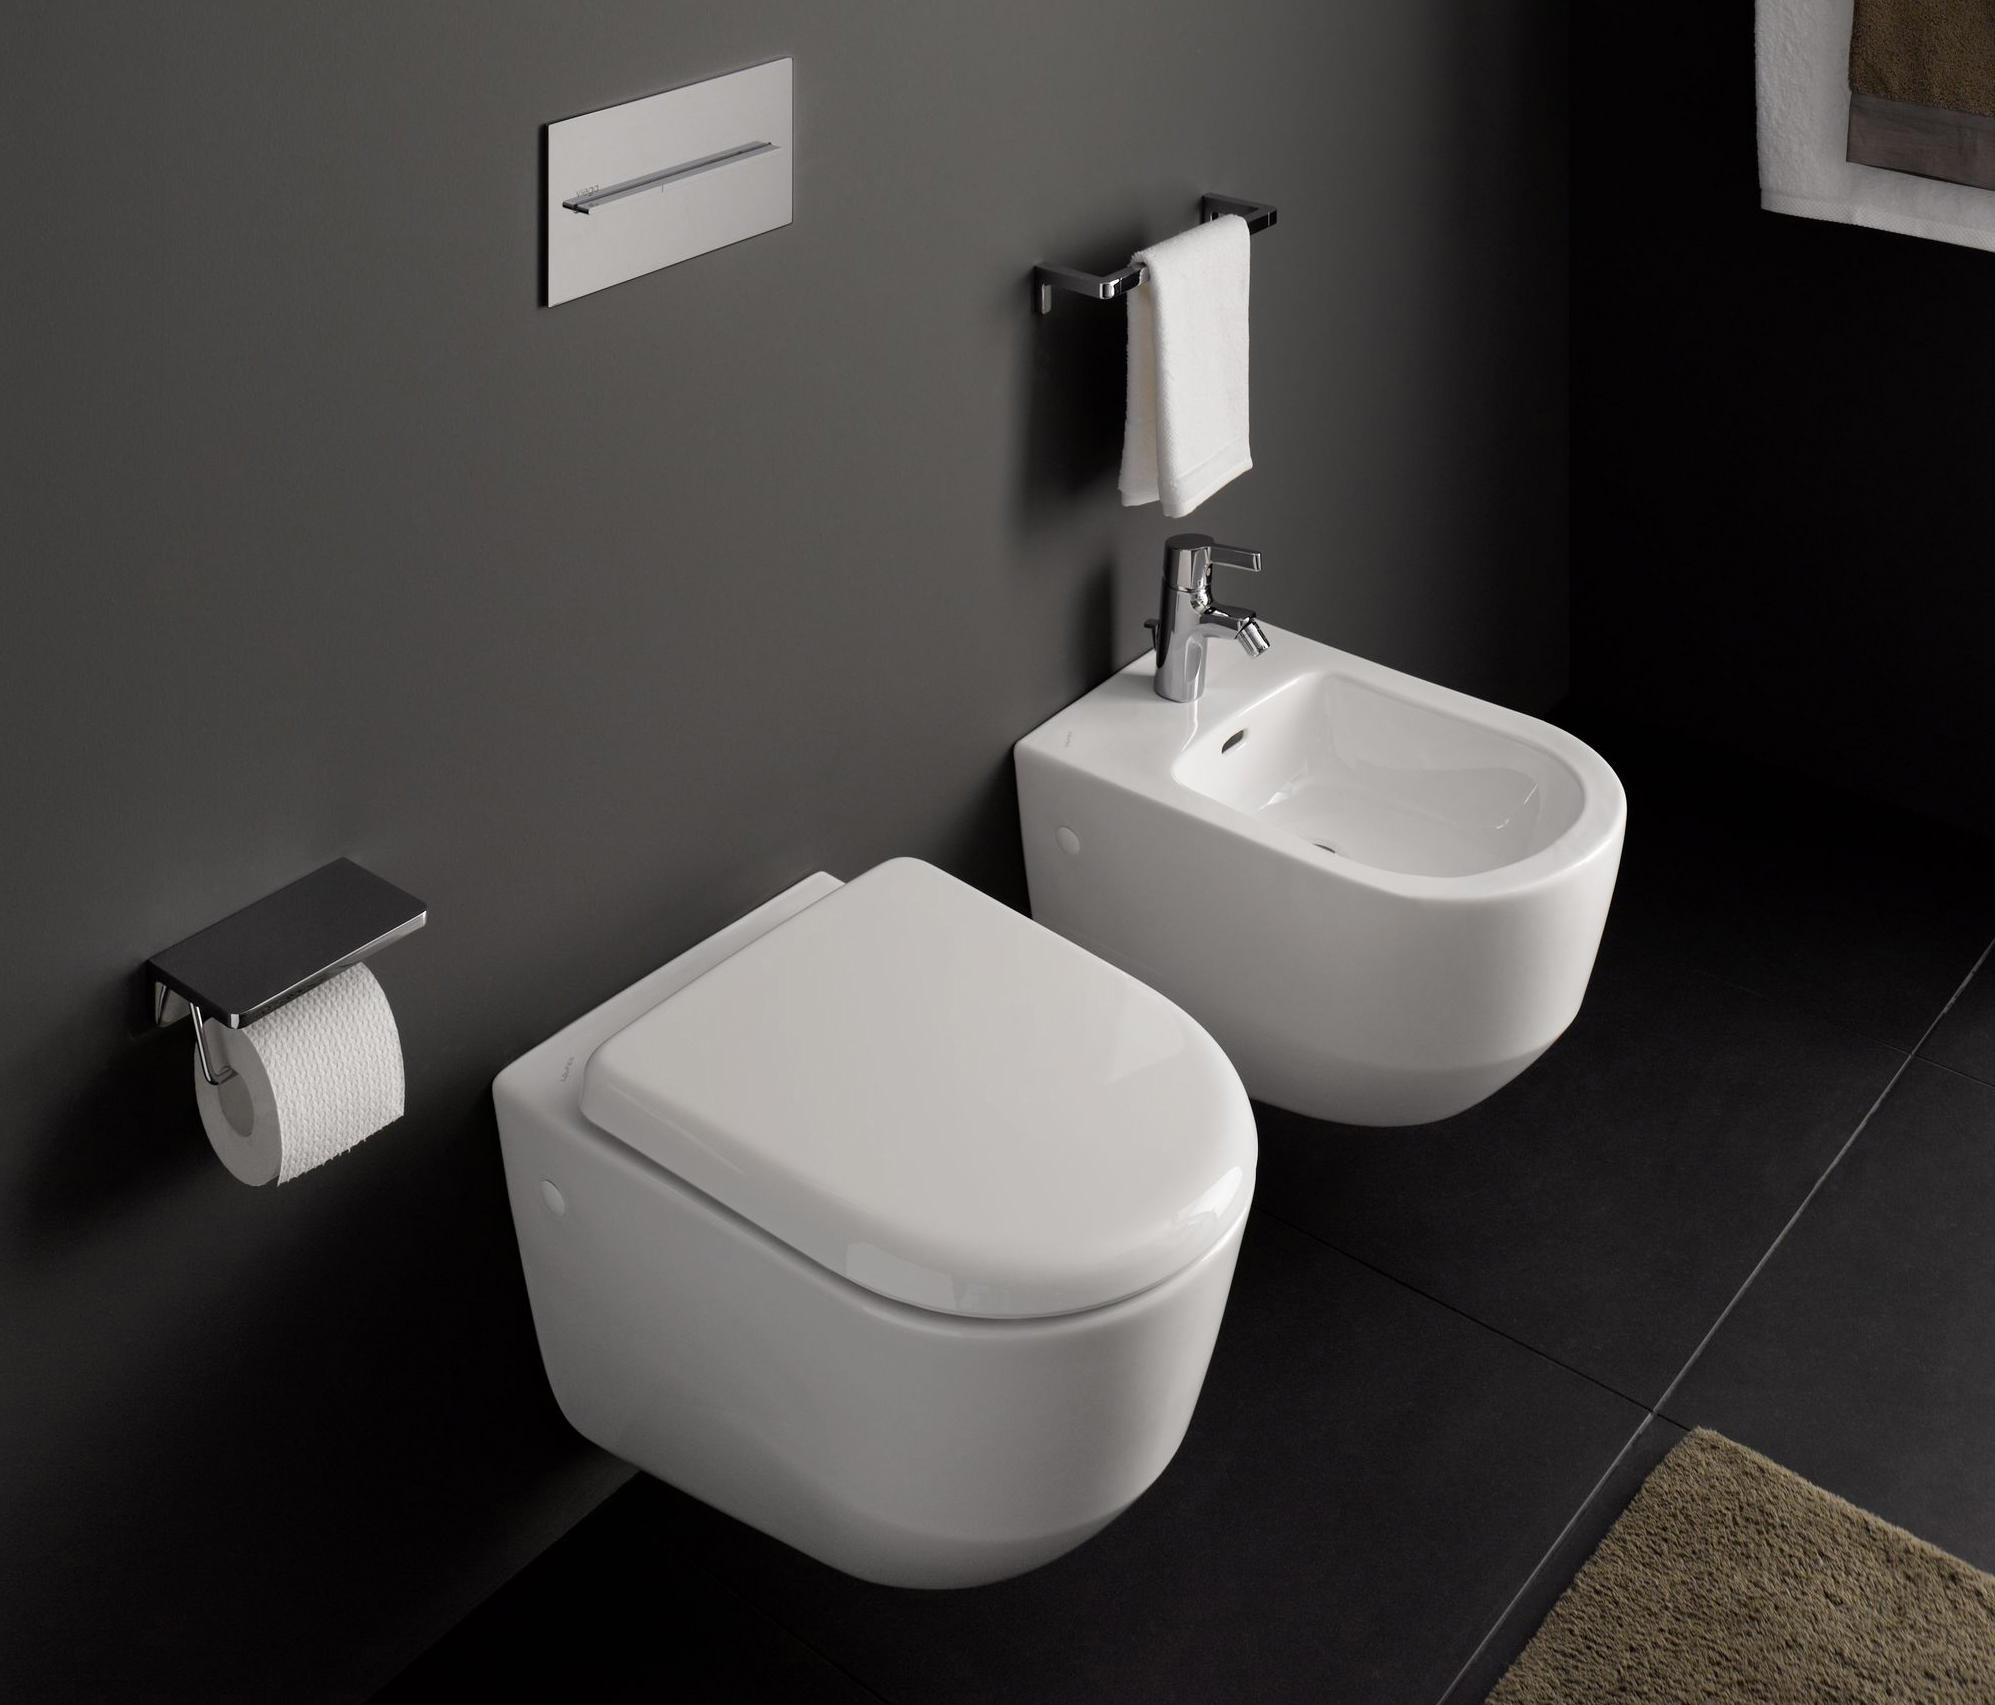 laufen pro wall hung wc toilets from laufen architonic. Black Bedroom Furniture Sets. Home Design Ideas